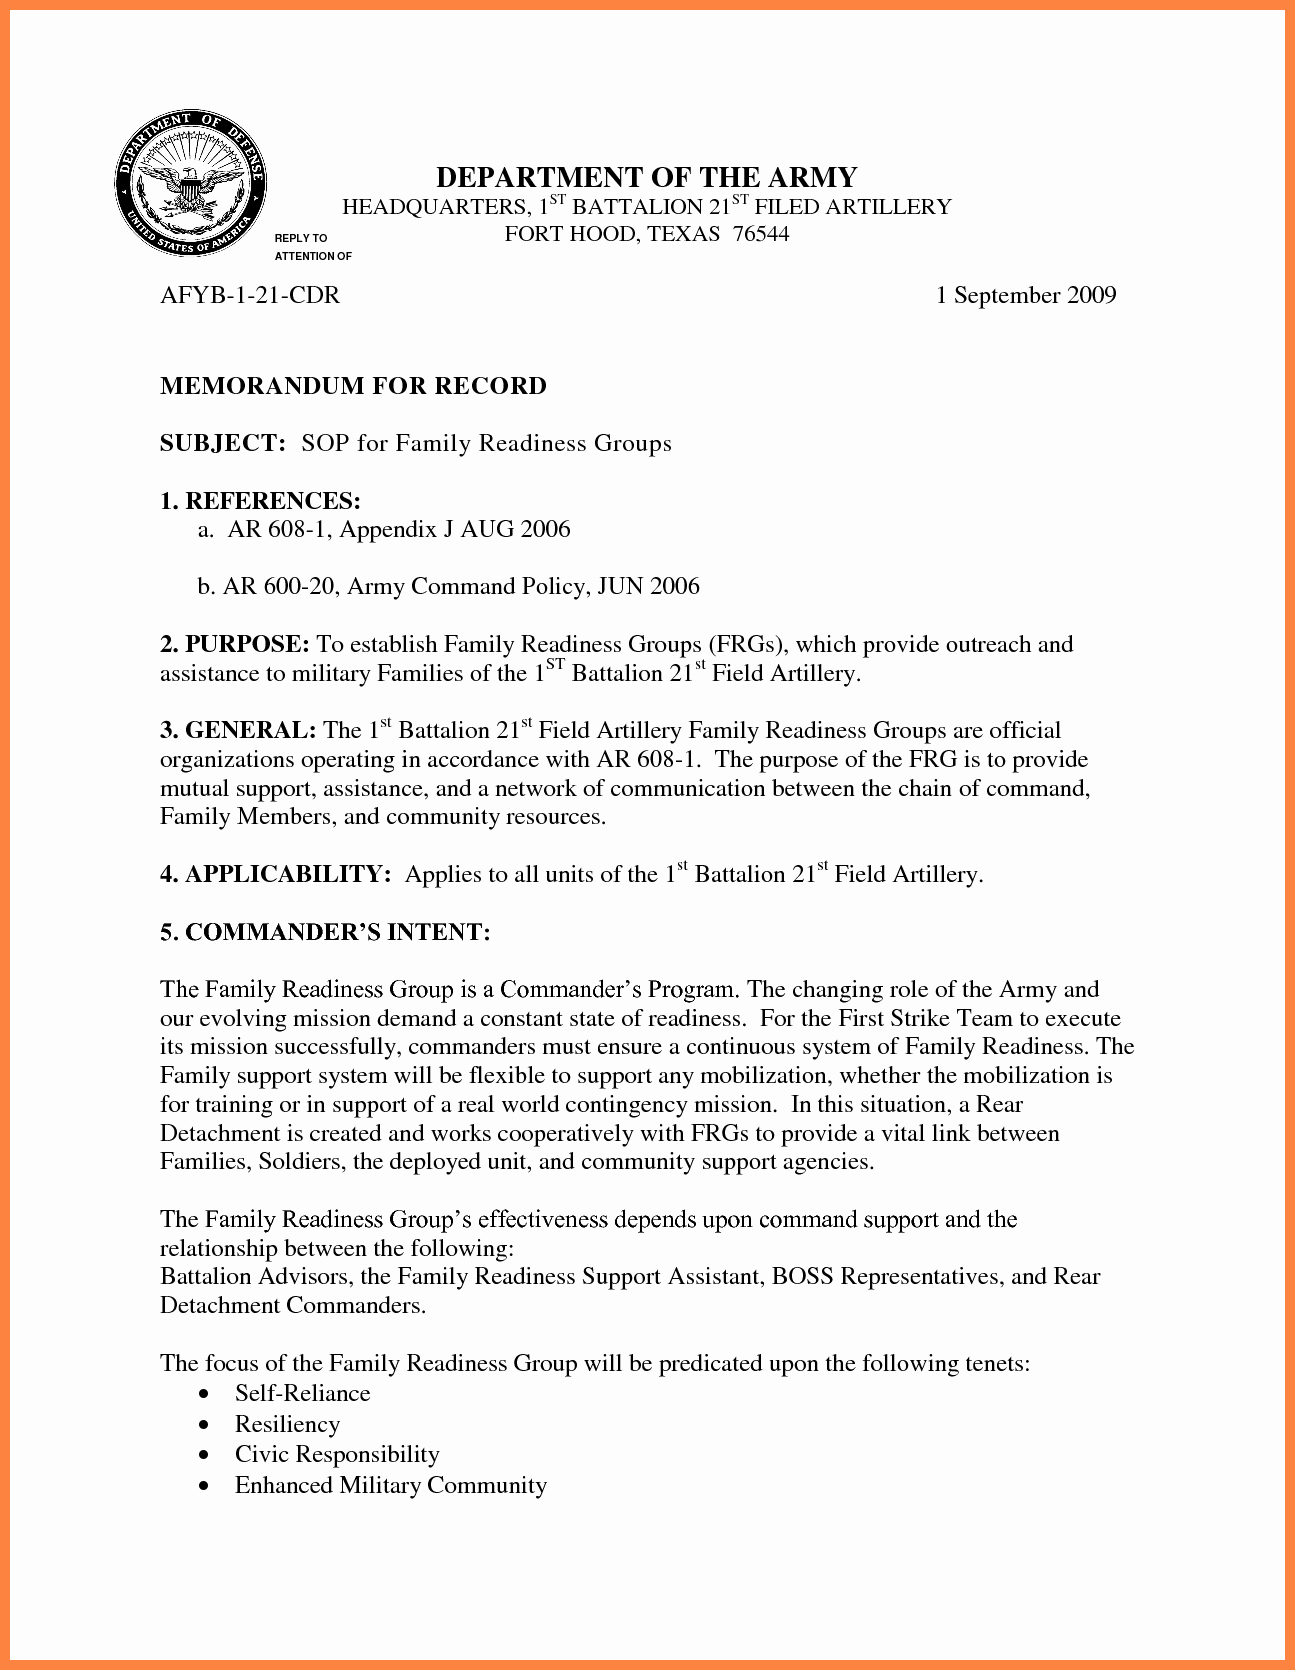 Memo for Record Template Best Of 9 Memorandum for Record Army